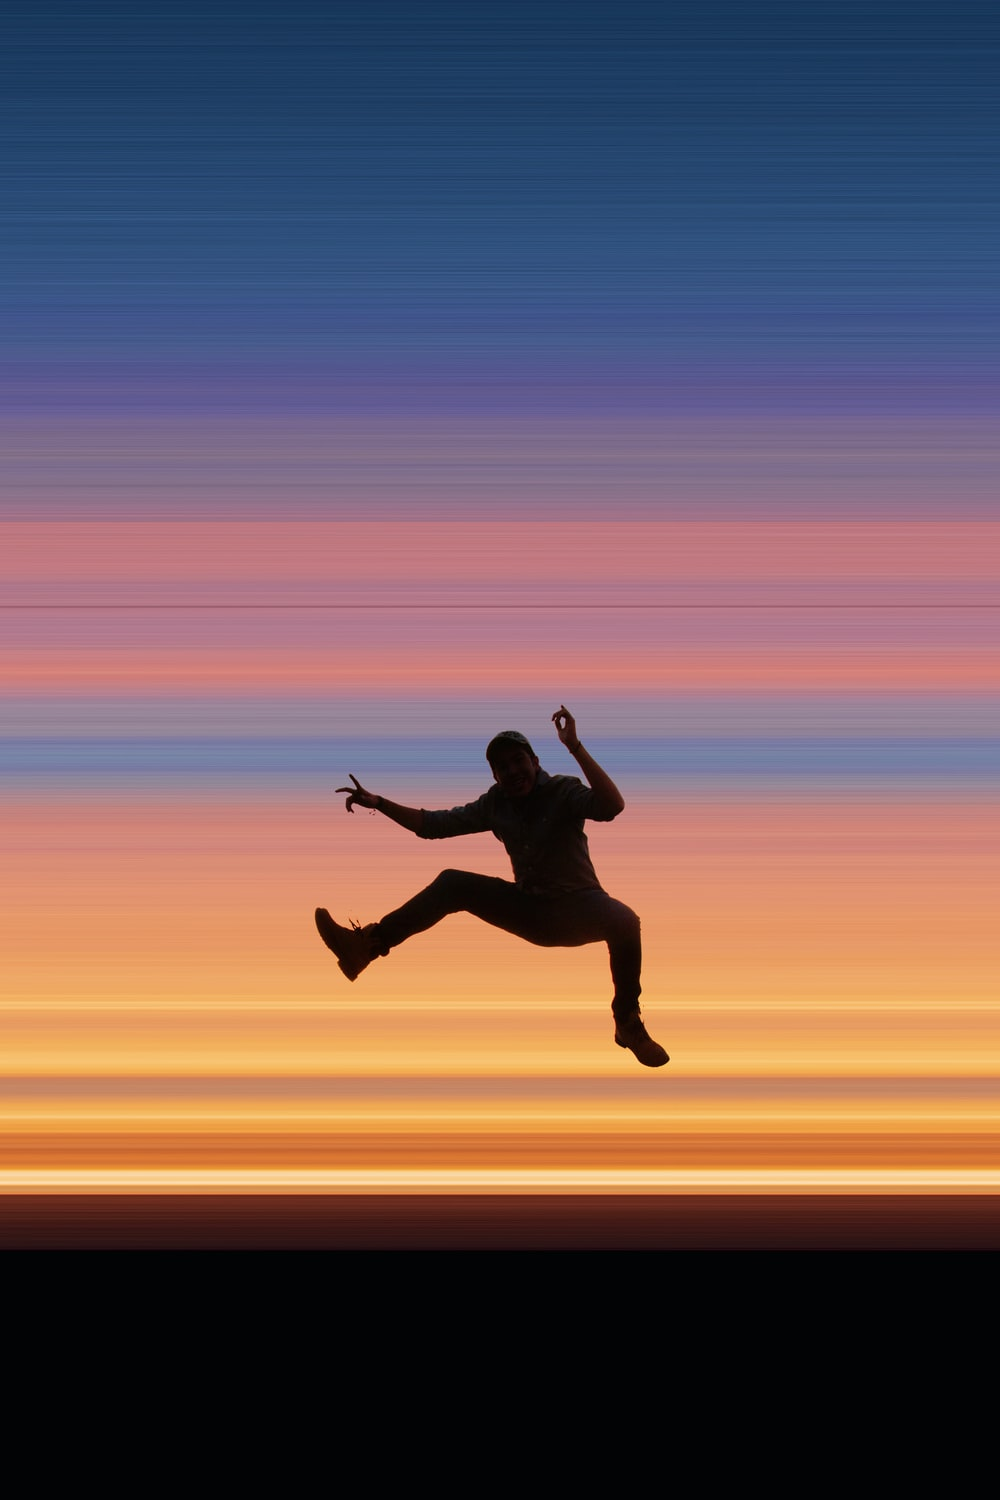 silhouette of jumper person